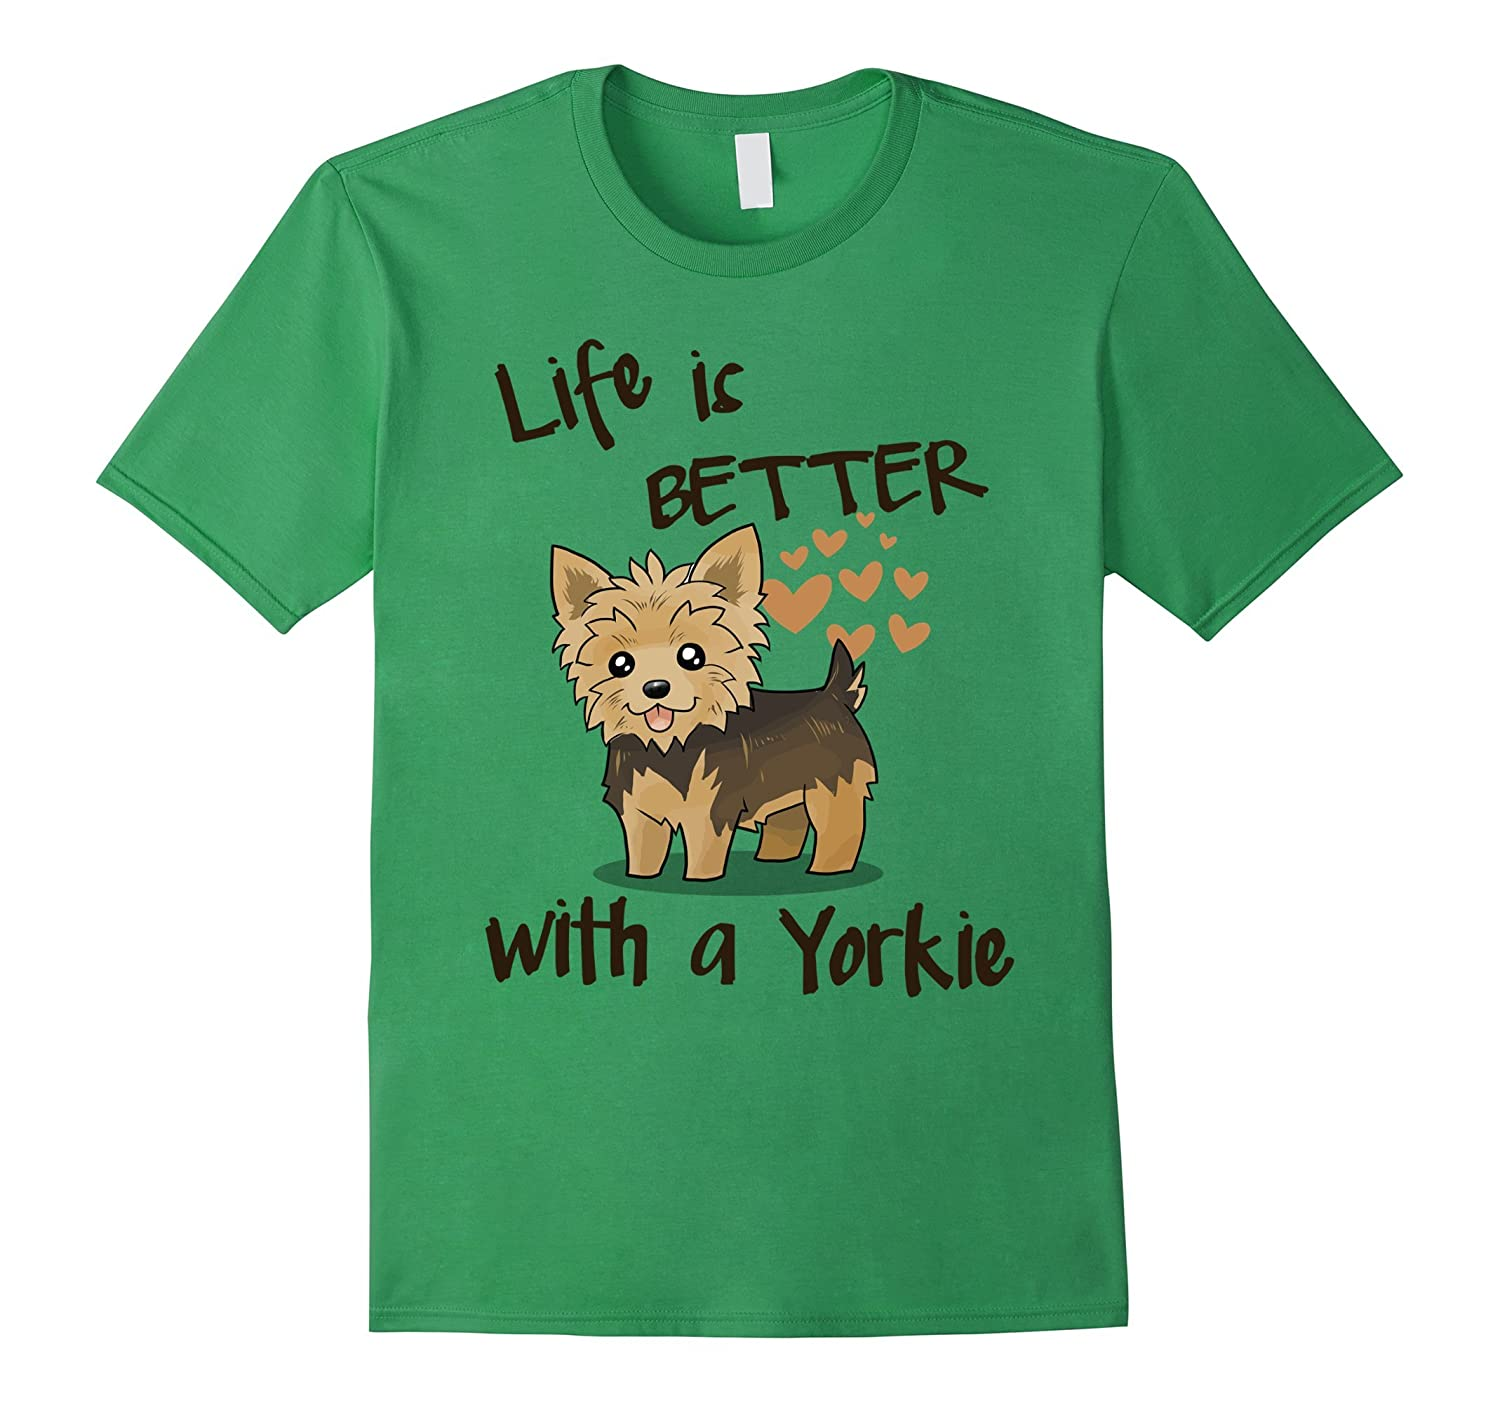 Yorkie T-shirt , Lifes better with a Yorkie-CL